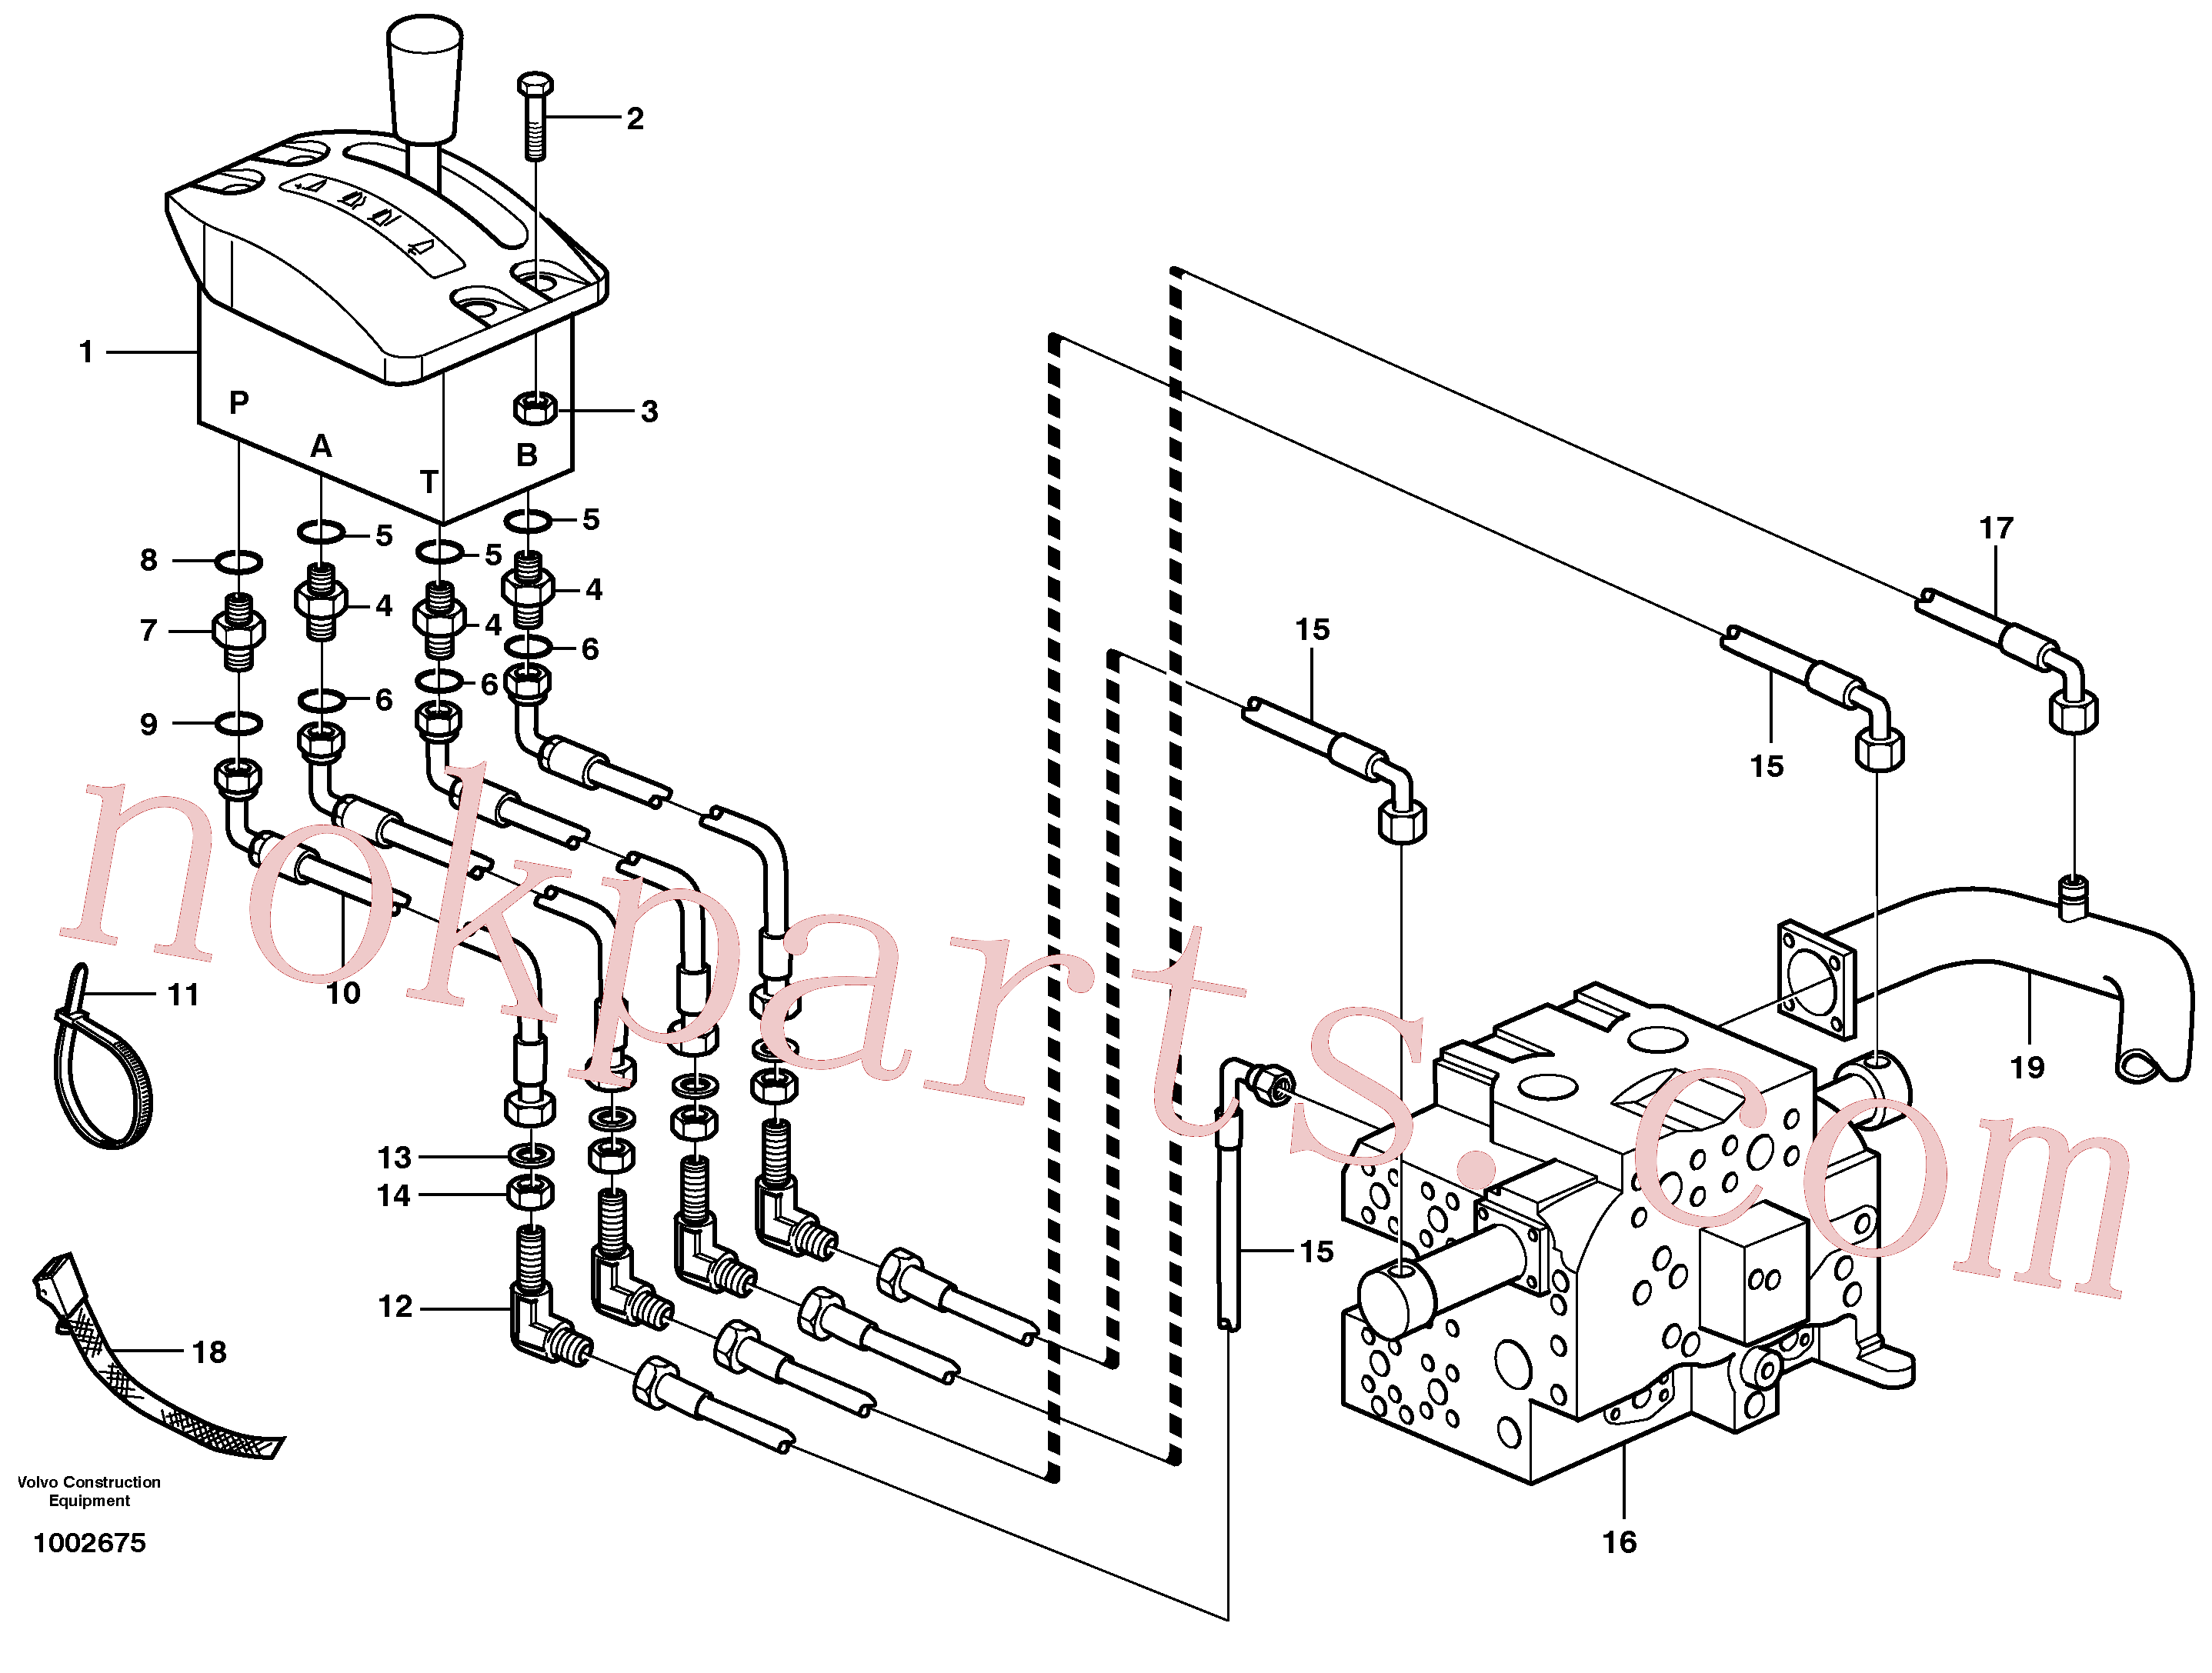 VOE14572455 for Volvo Servo system, tipper control(1002675 assembly)